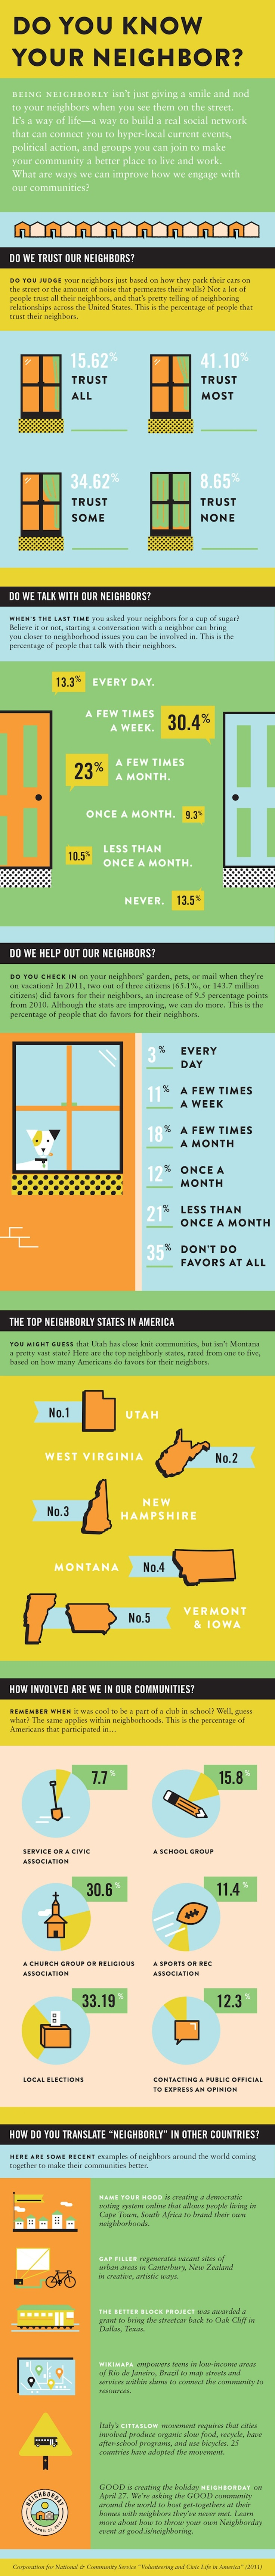 An #infographic about what being a neighbor looks like today. Come on everyone, we can do so much better and change this!